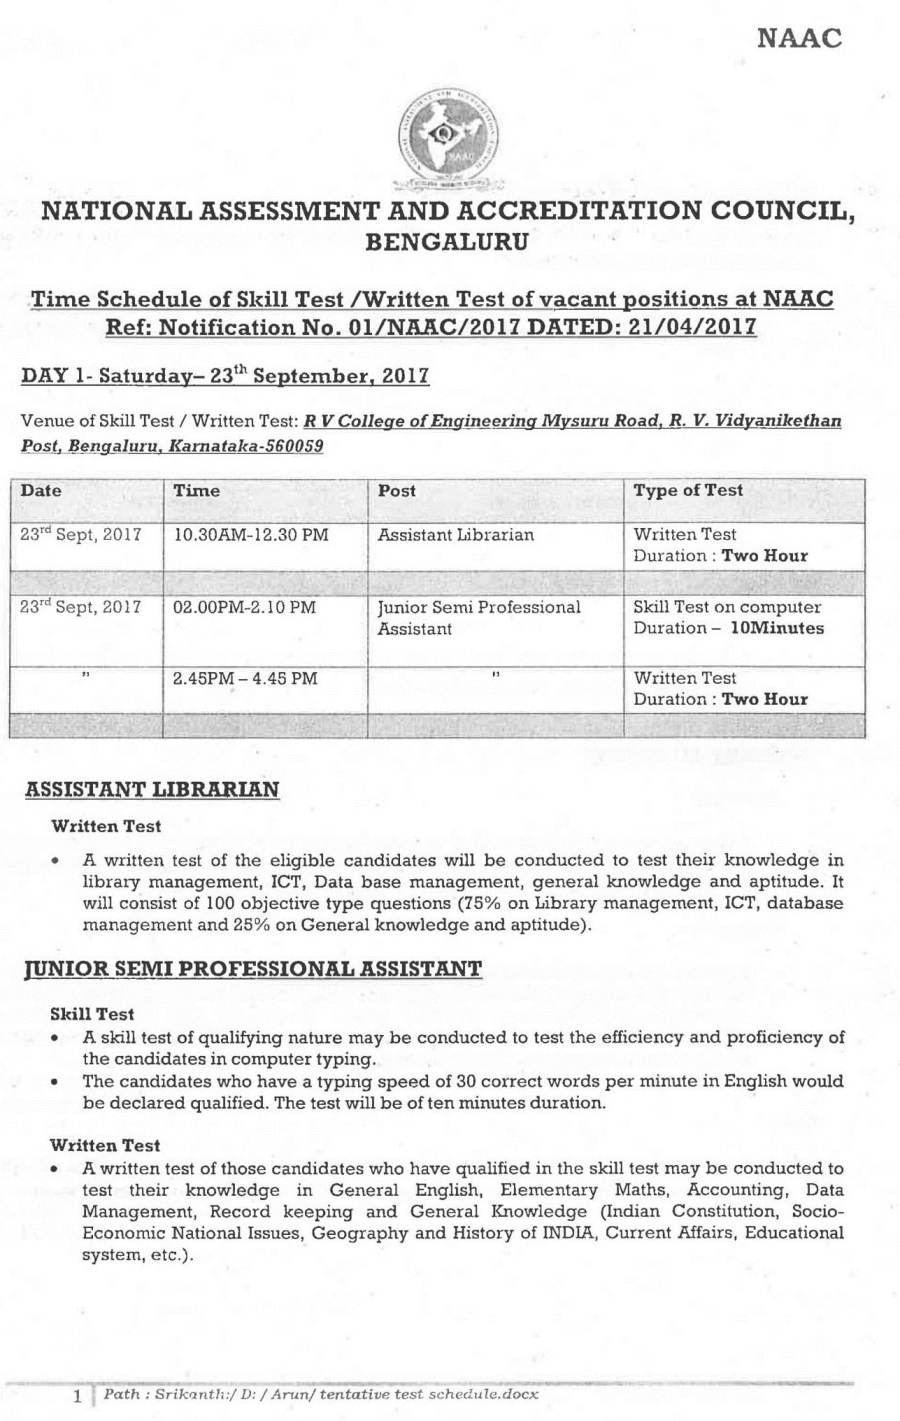 Time Schedule (Skill Test & Written Test)-1.jpg